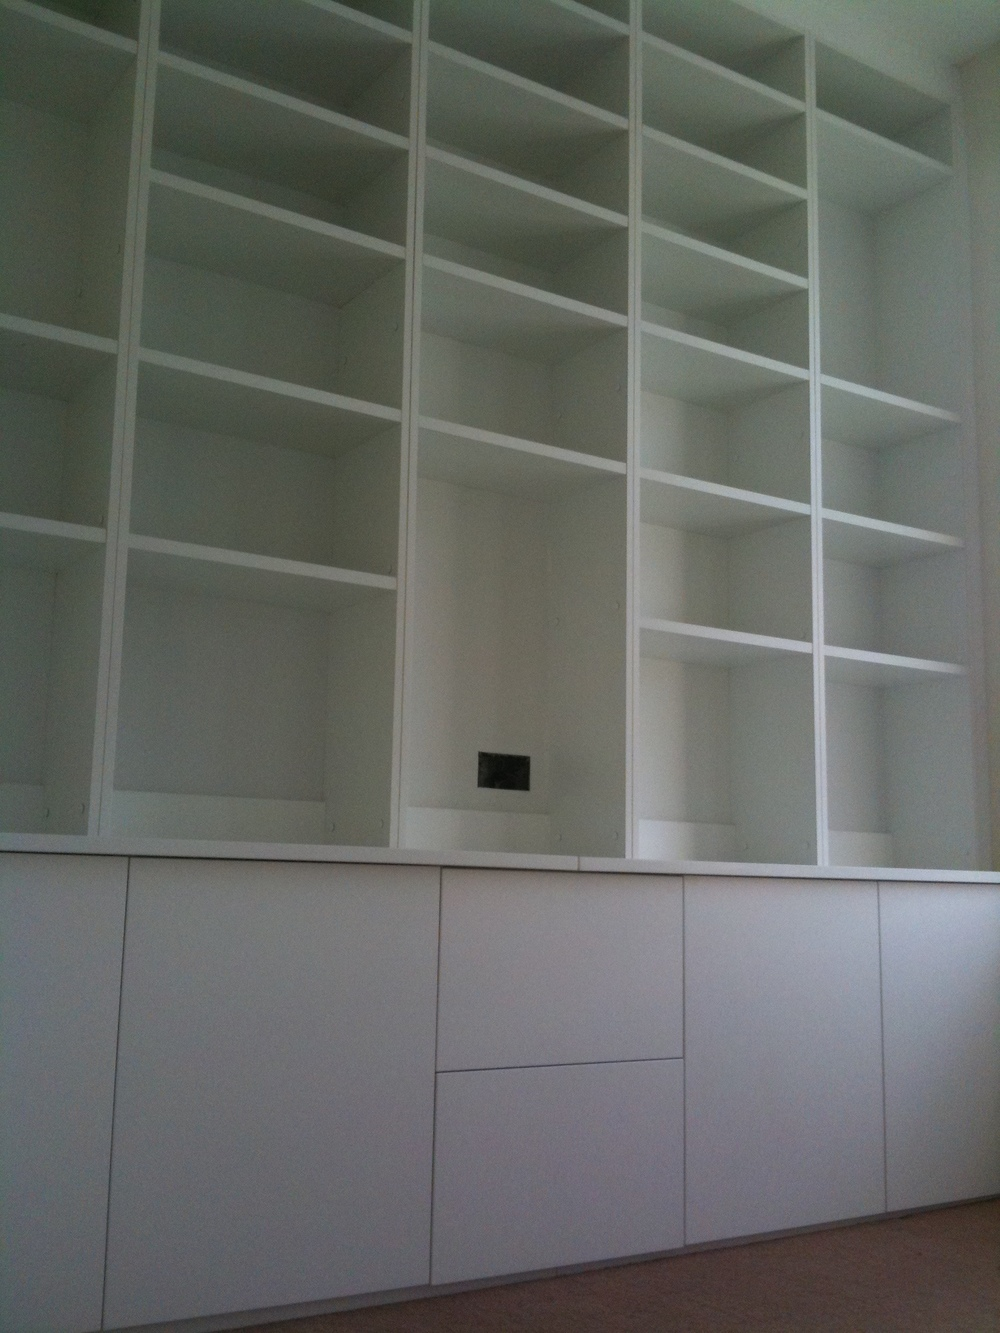 Home office shelving & cabinets.